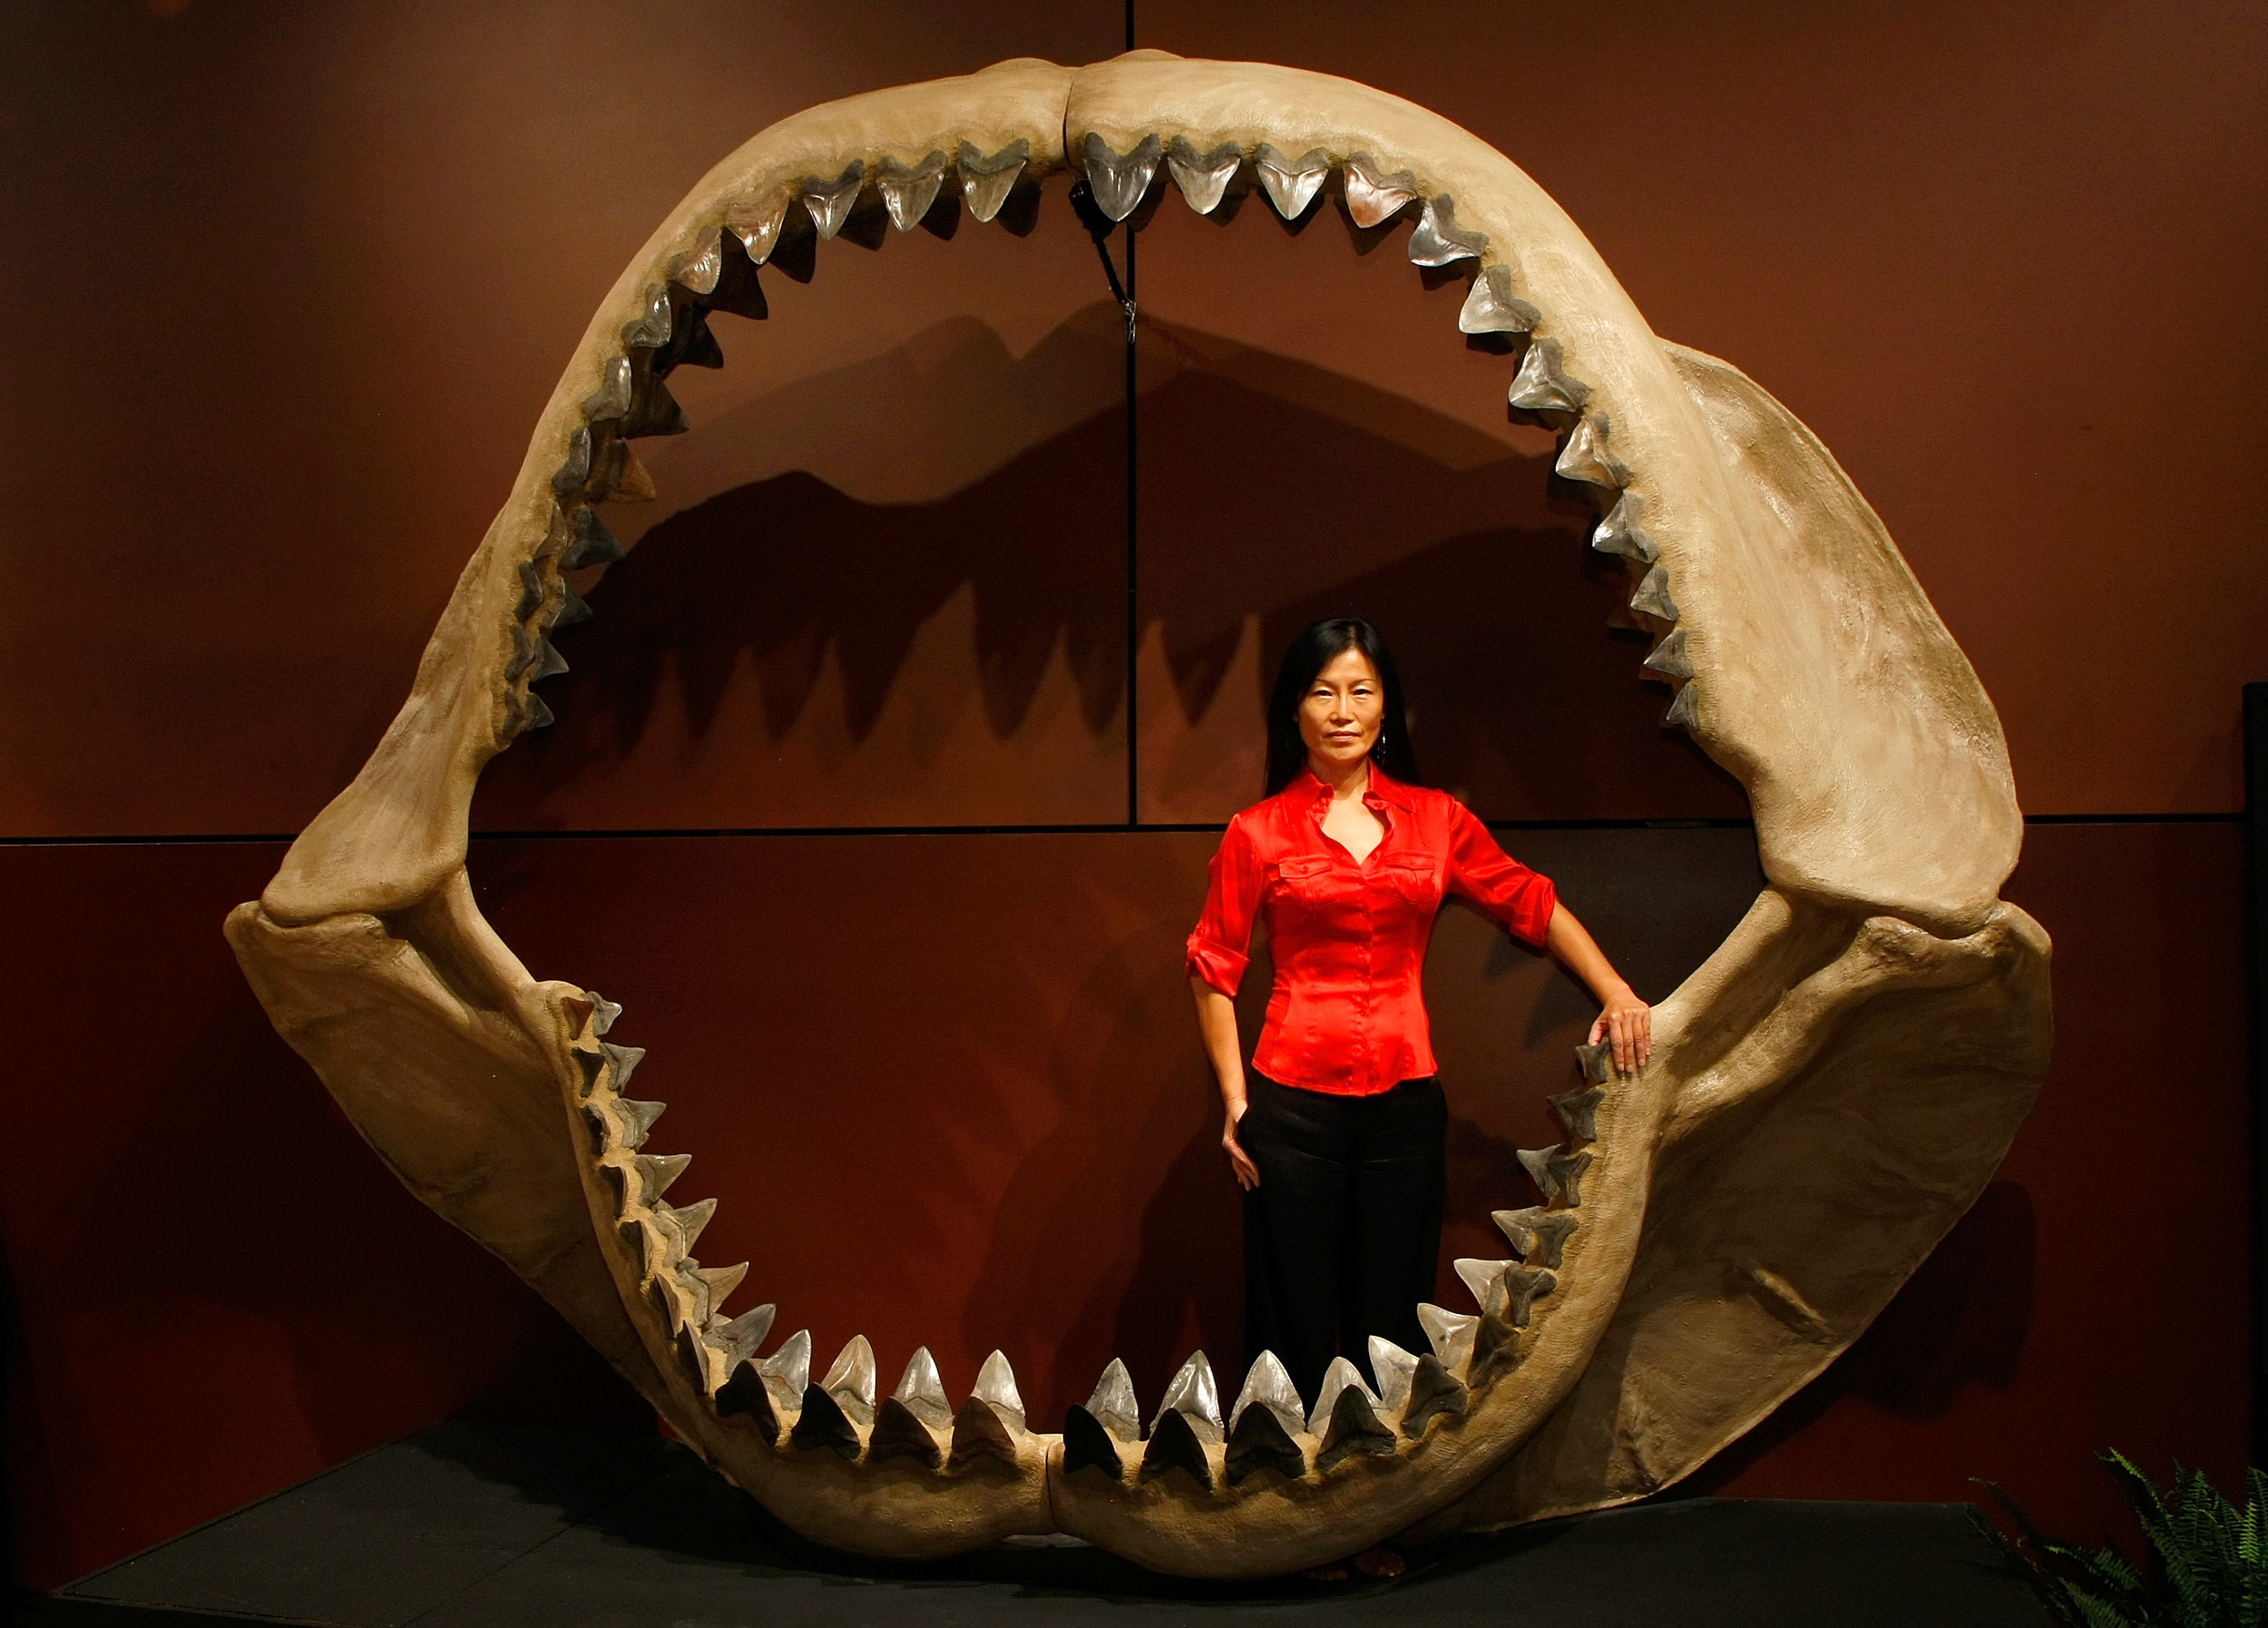 In Australia, What Predator Killed And Ate A 10-Foot Great White Shark? 'The Hunt For A Super ...